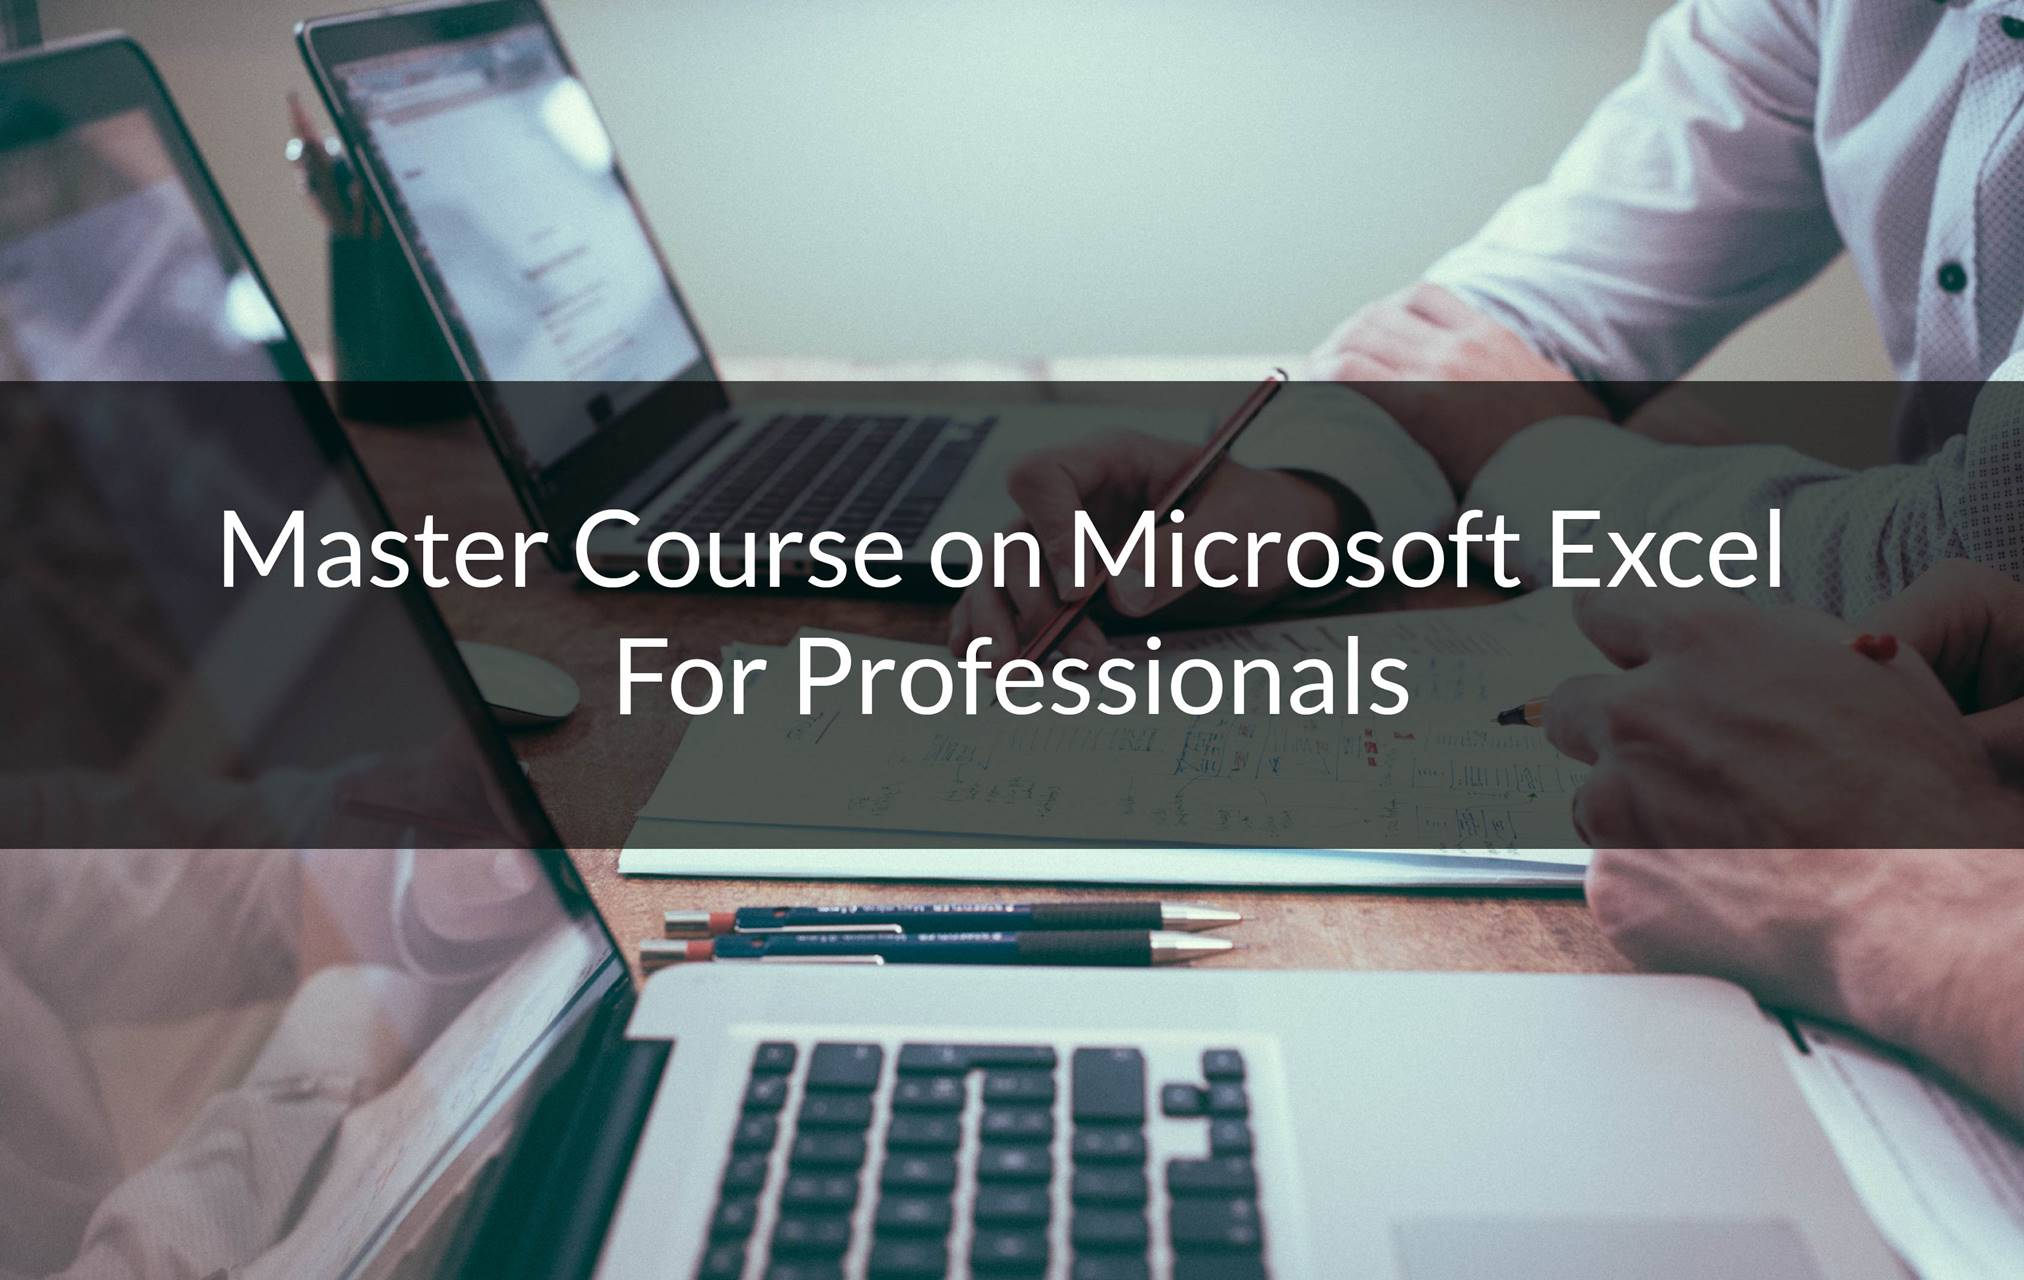 Master Course on Microsoft Excel For Professionals